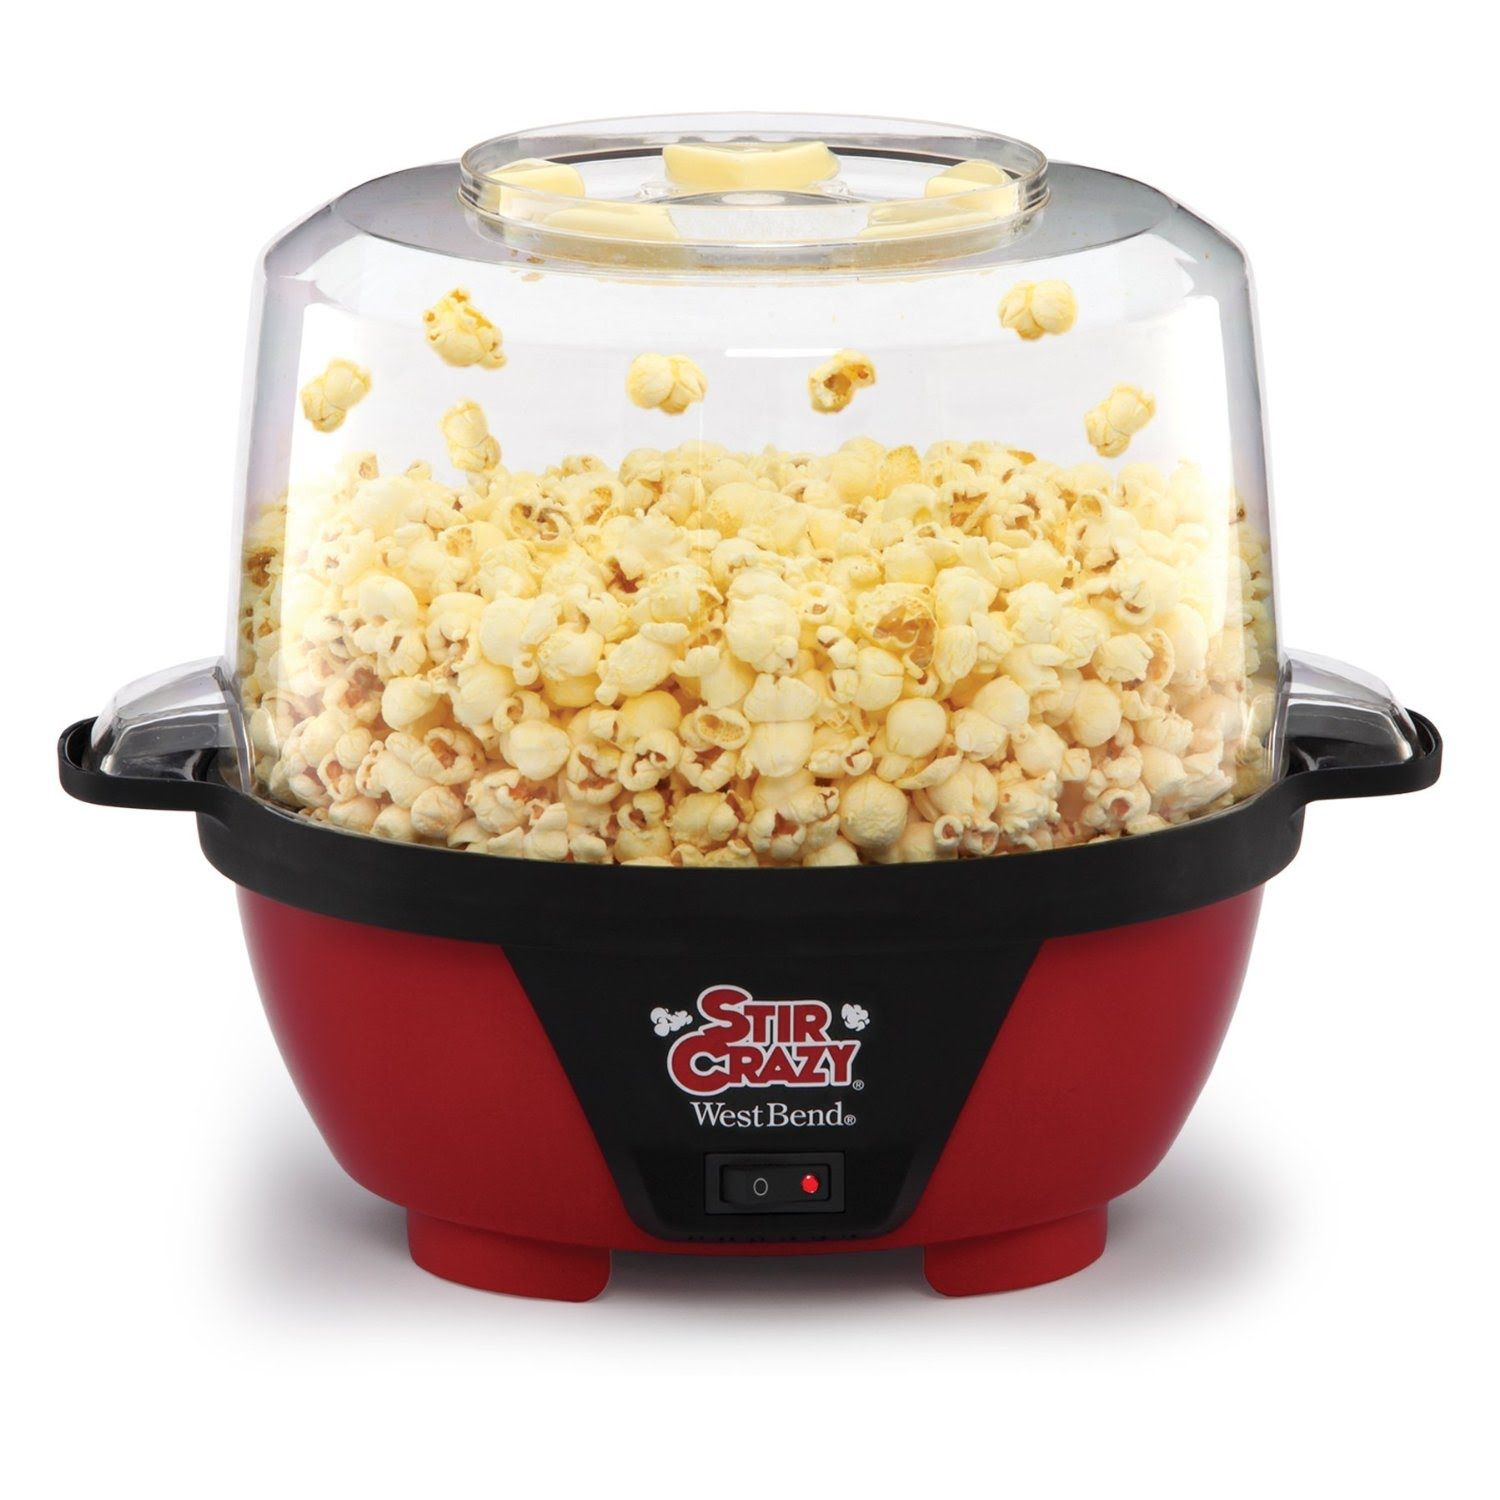 Popcorn Gift Ideas For All The Family If You Are Looking For